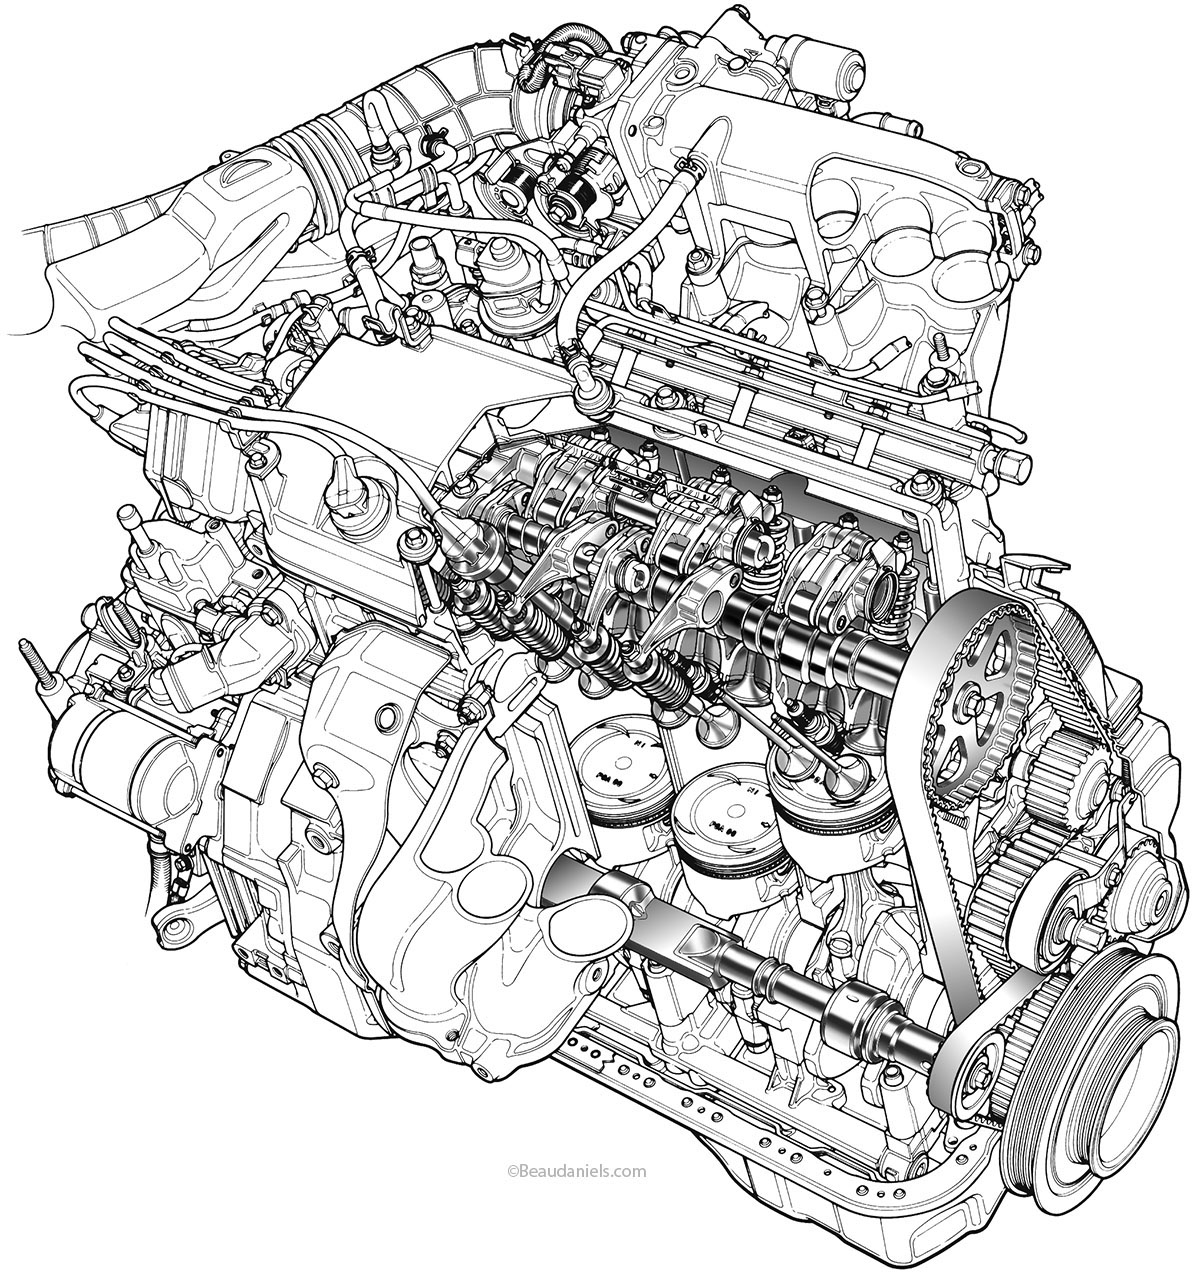 generic car cutaway wiring diagram and engine diagram Toyota Engine Diagram Toyota Celica Engine Diagram